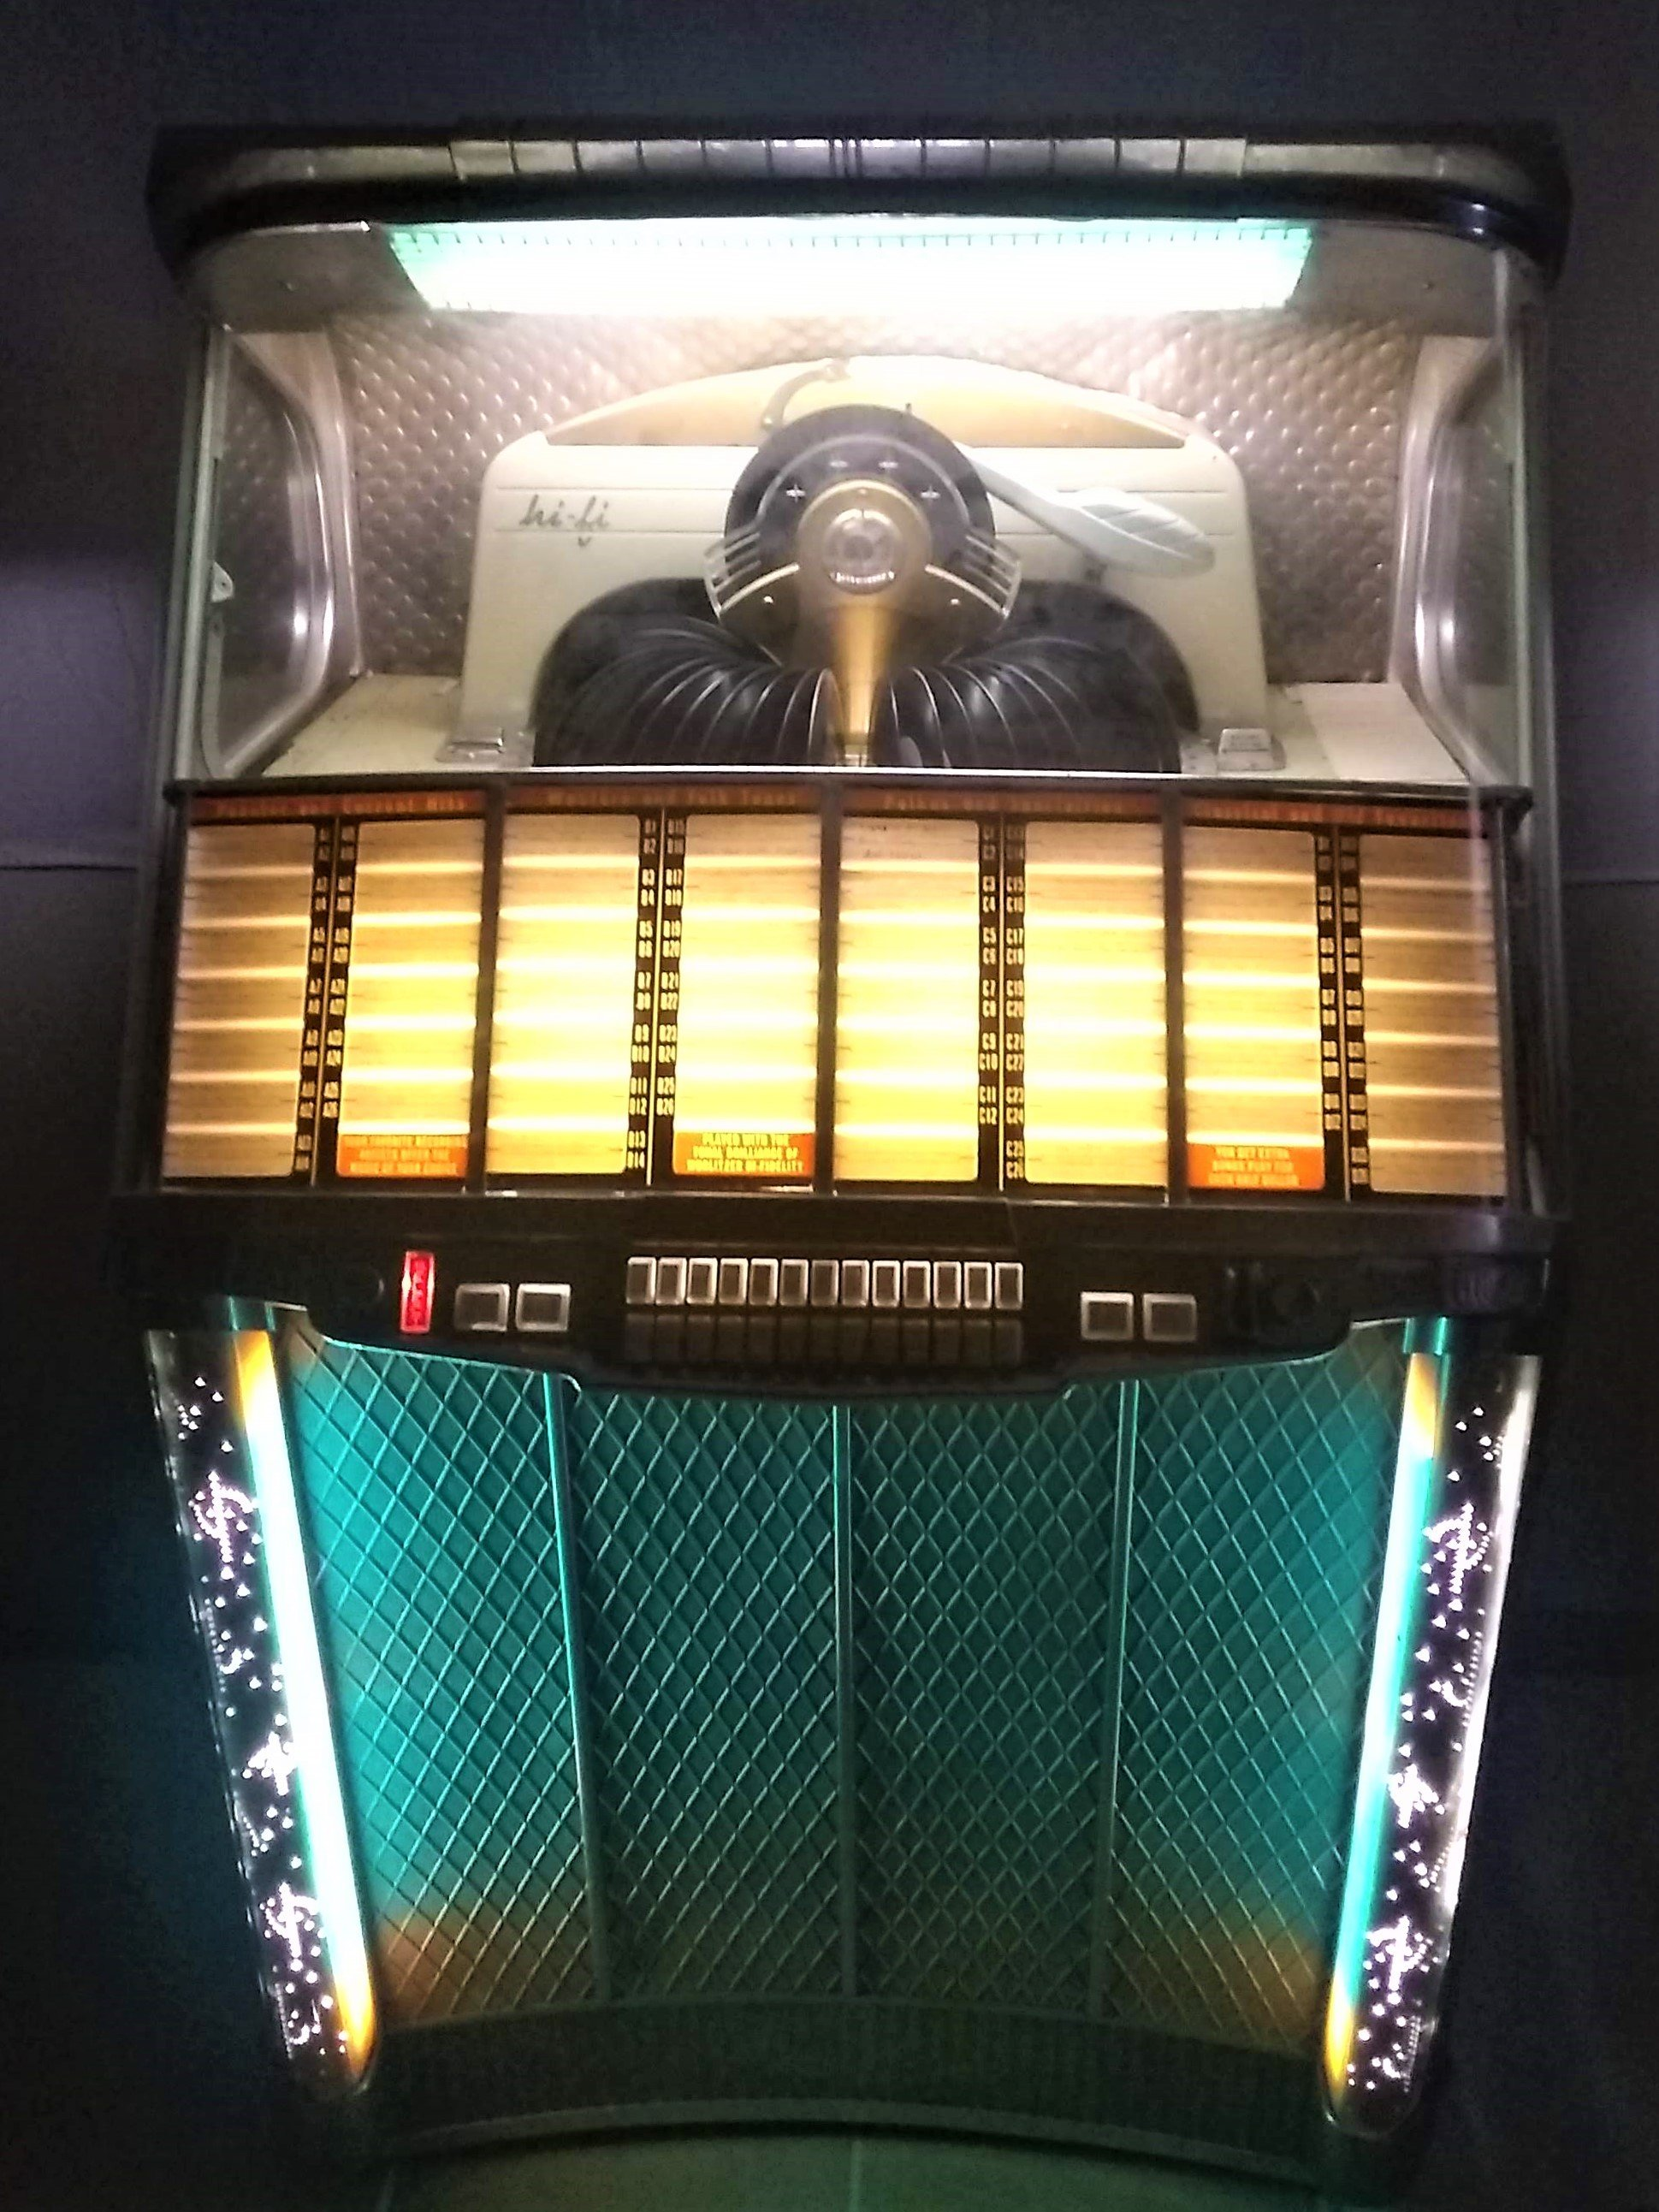 https://0201.nccdn.net/1_2/000/000/0a1/9a7/jukebox-2104-wurlitzer.jpg